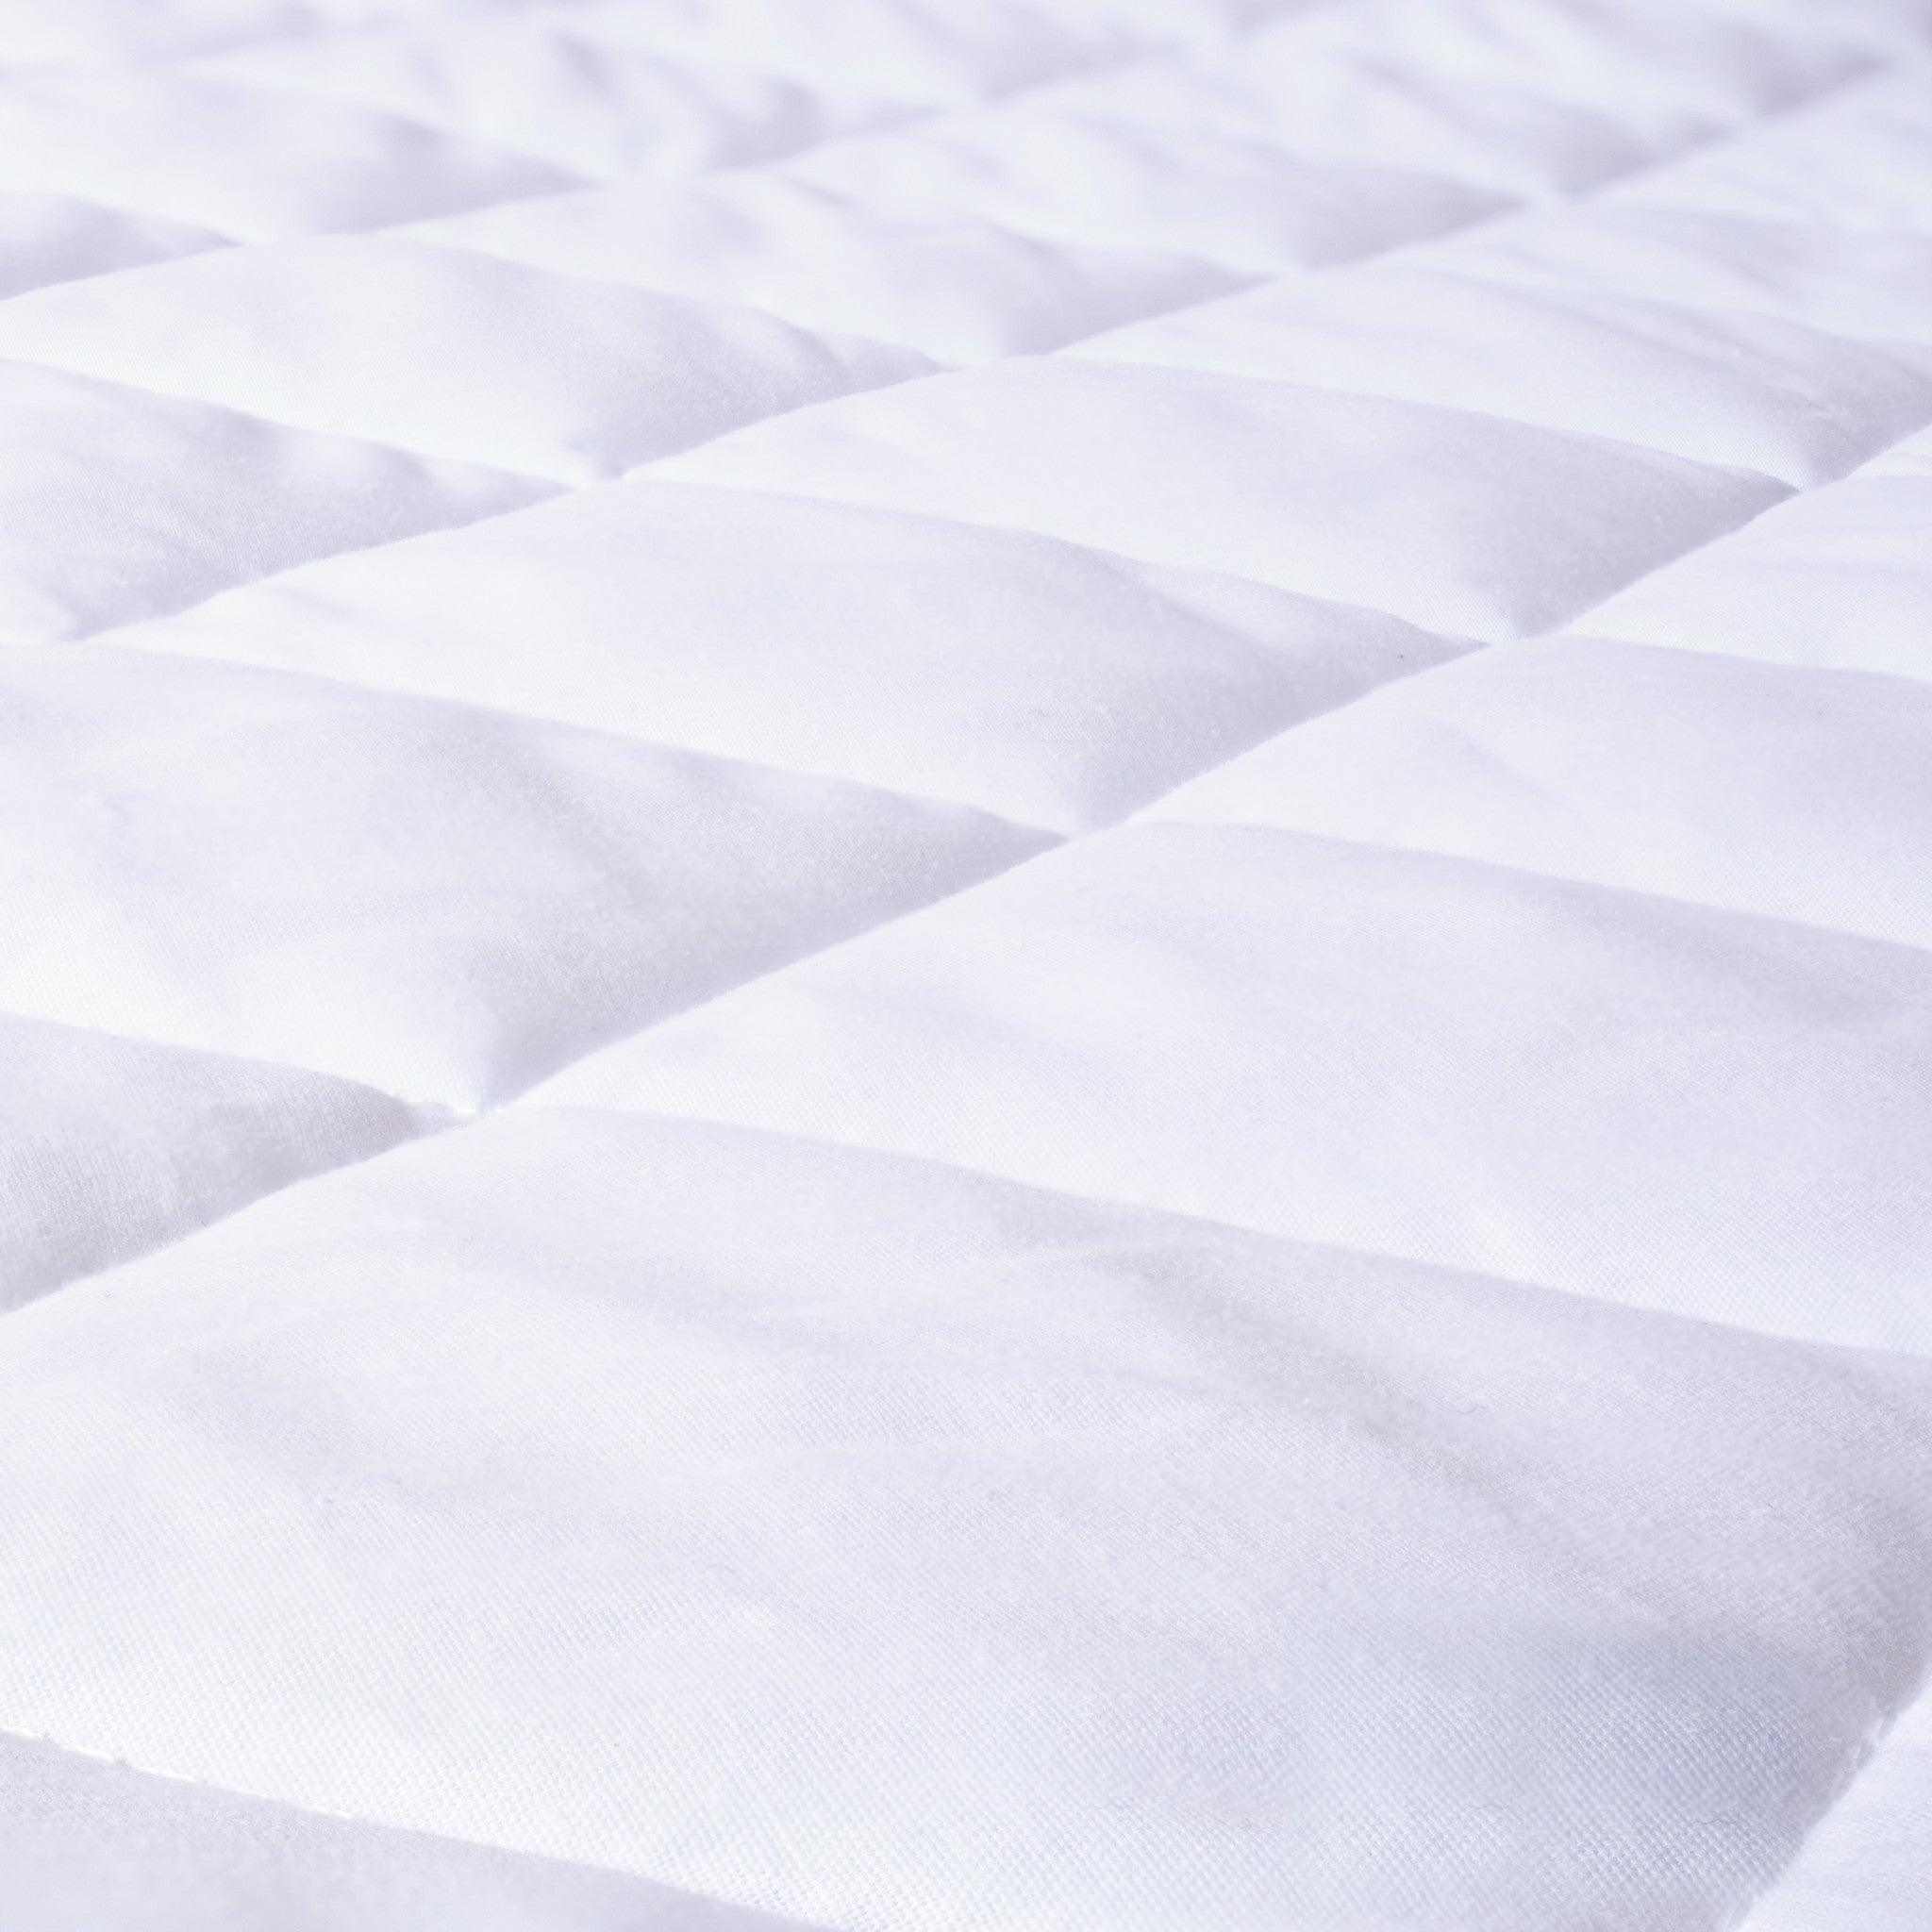 Mattress pillowtop (4 photos) - Photography and Web Design - Los Angeles, US based Shopify Experts Revo Designs